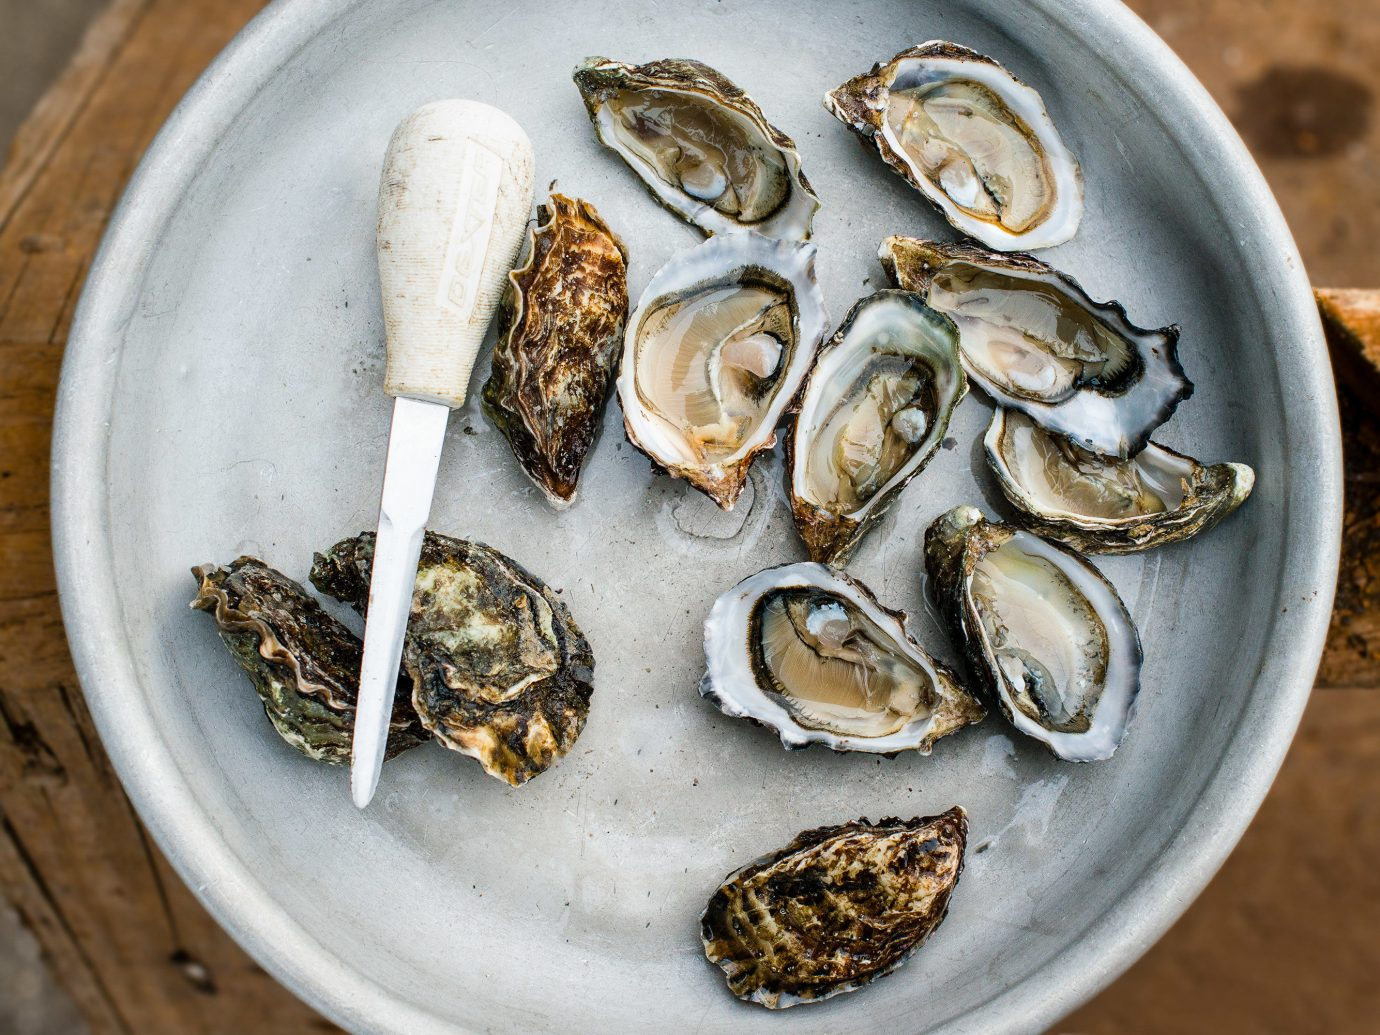 Trip Ideas plate oyster food Seafood clams oysters mussels and scallops oysters rockefeller animal source foods mussel dish slice clam recipe edible seed sliced meal